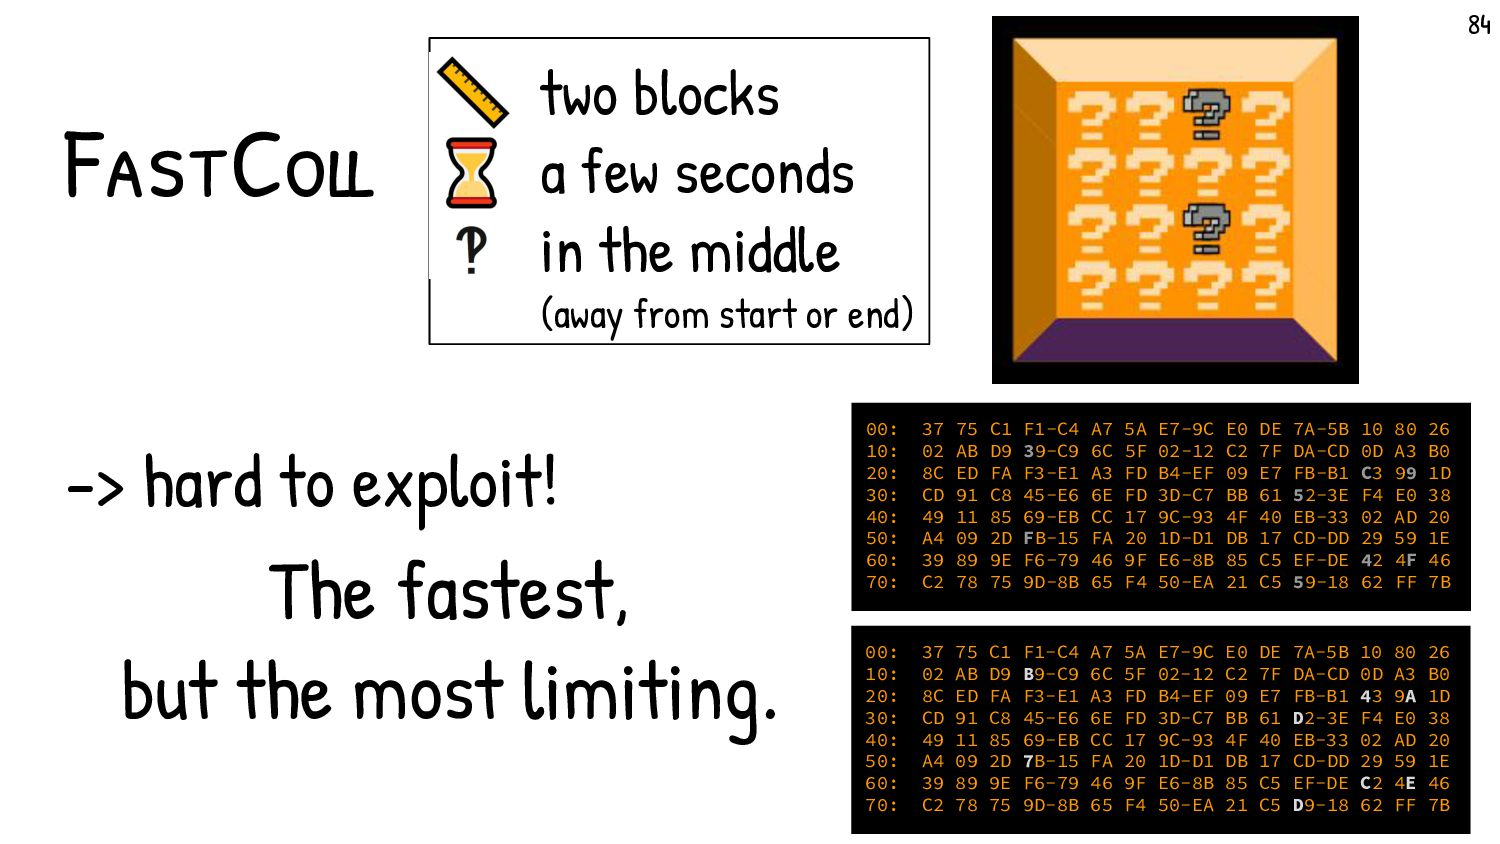 What makes exploiting Fastcoll so difficult? Ev...